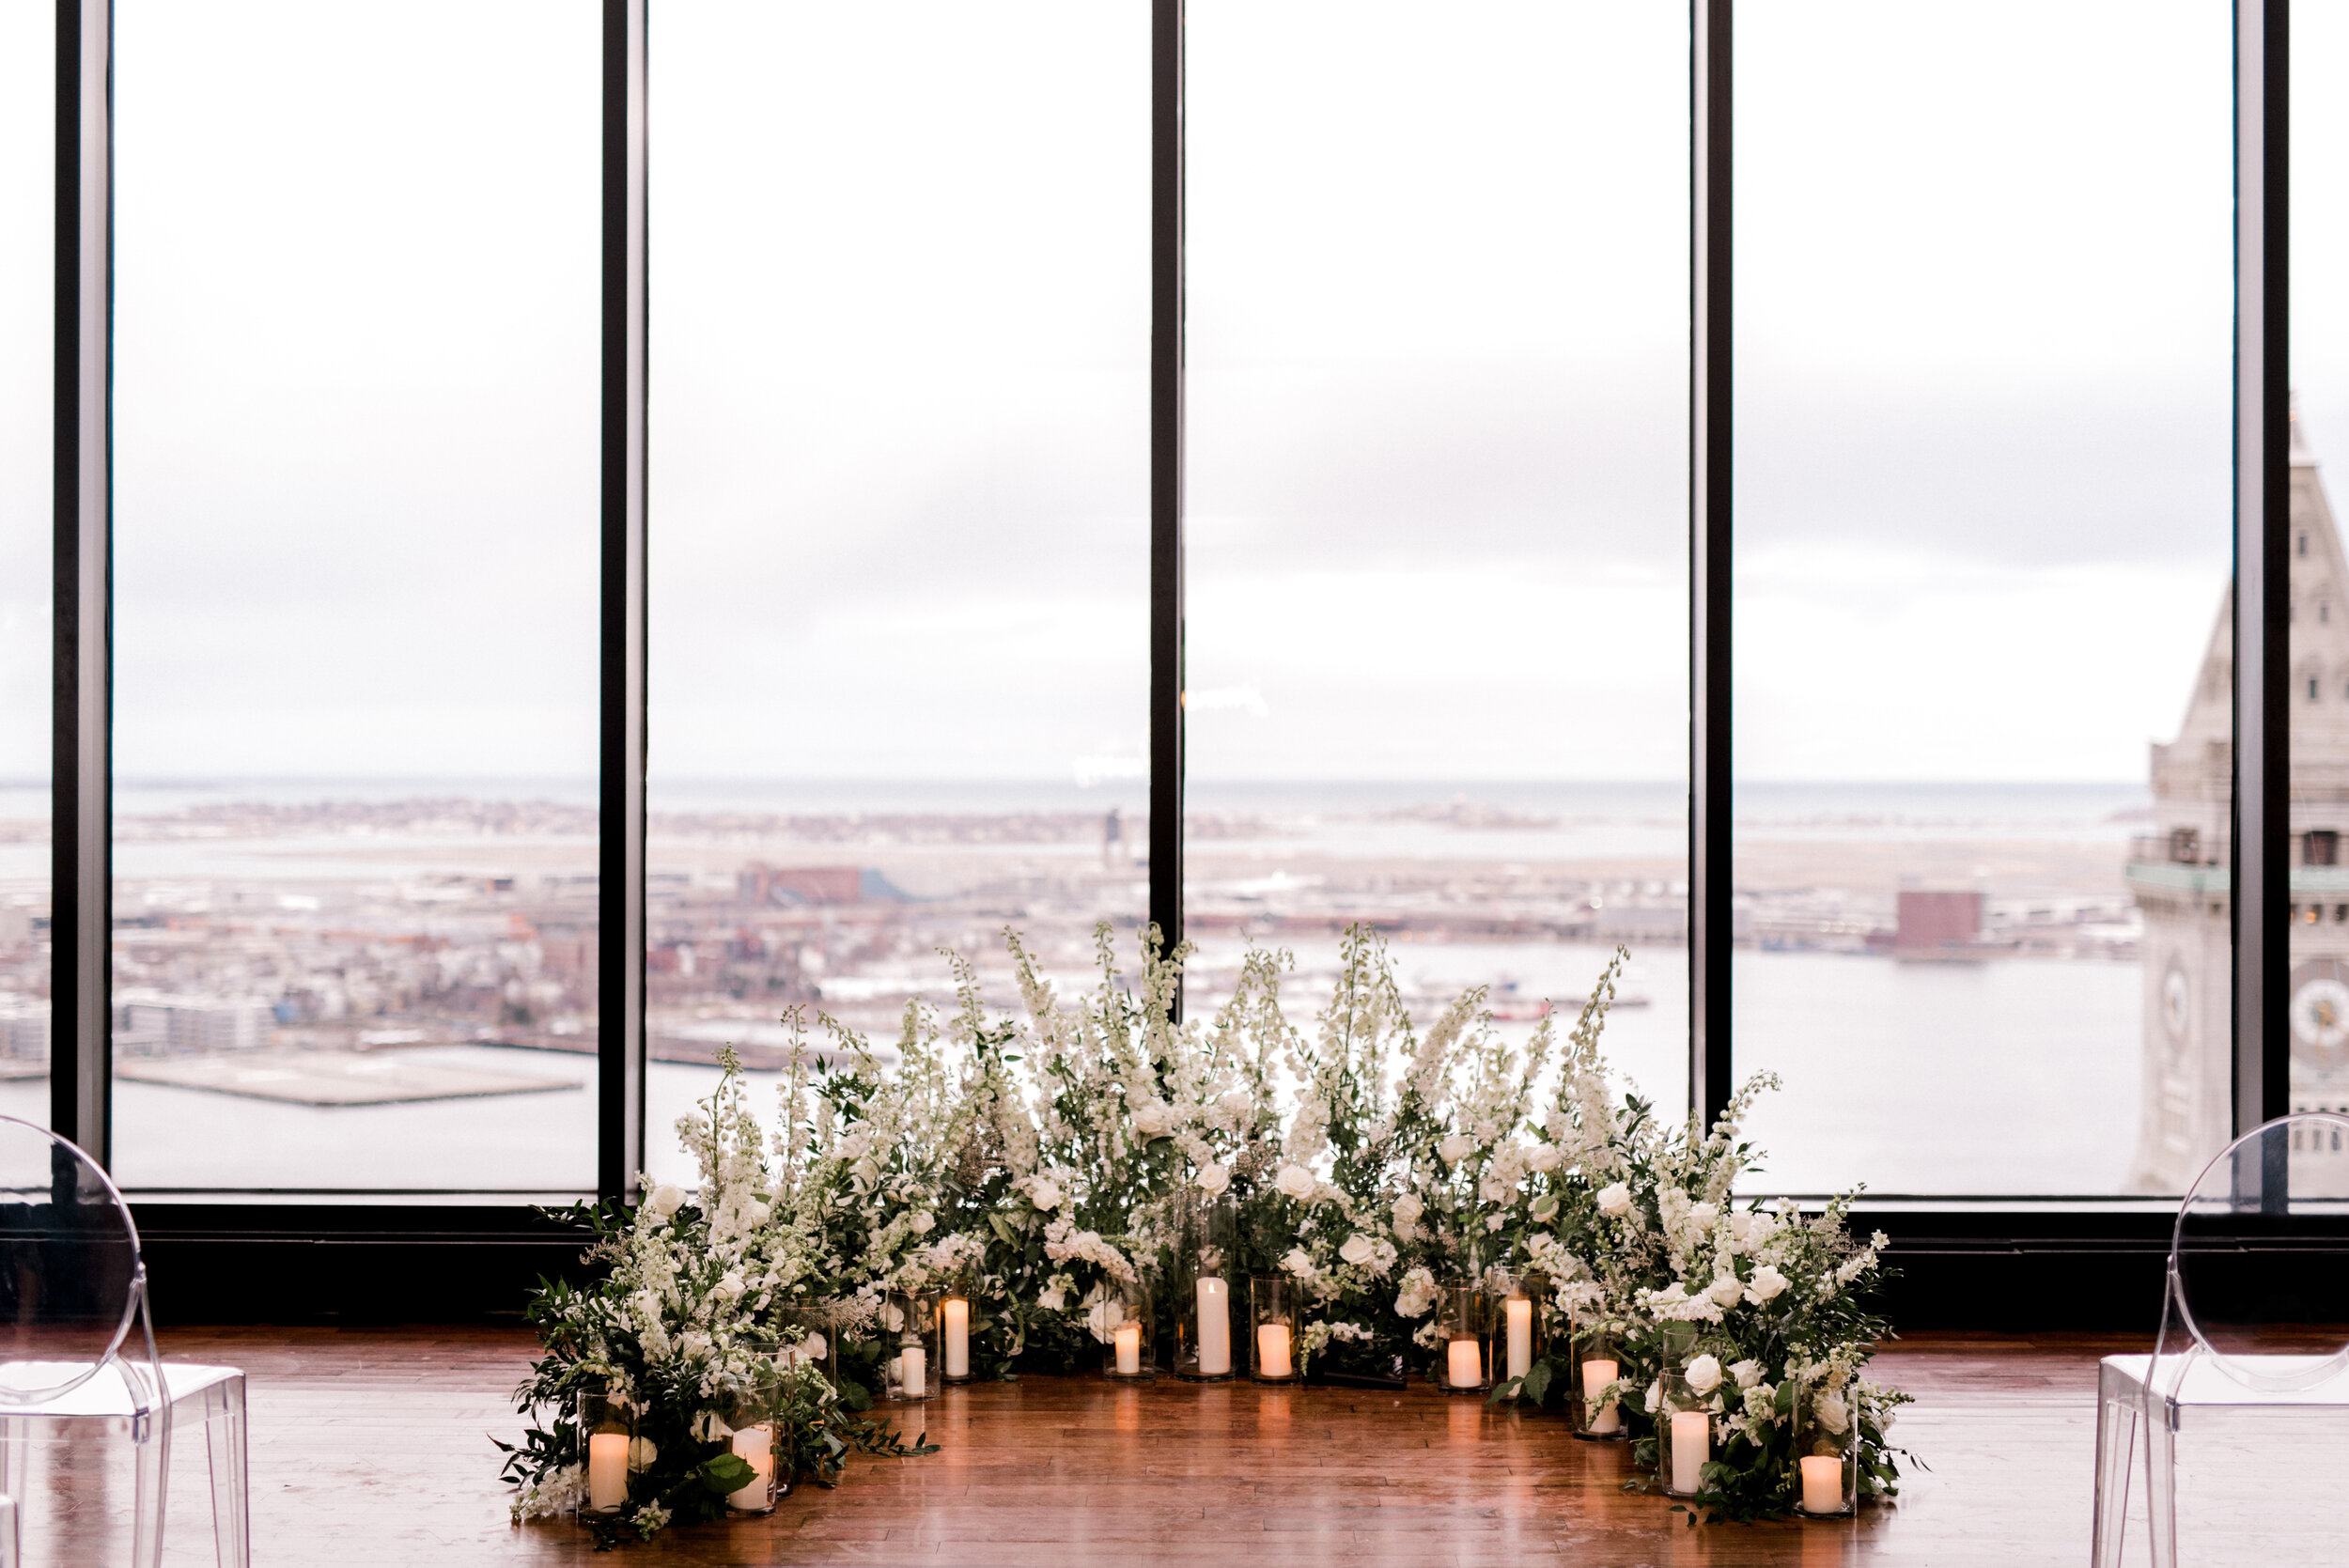 Ceremony floral installation (from the floor upwards as to not obstruct the view) Floral by The Wild Dahlia | Photography by Annmarie Swift